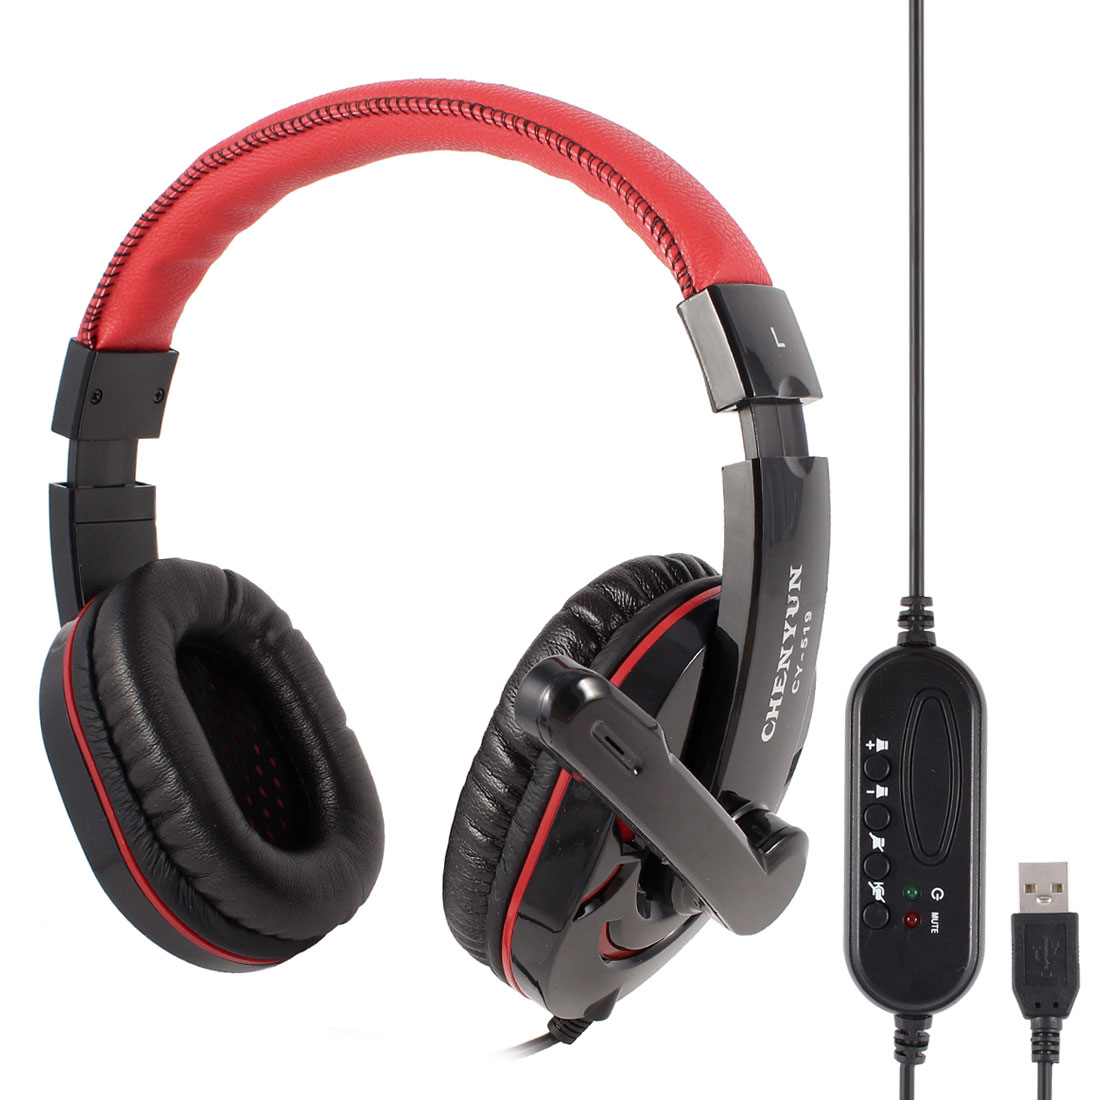 Red Black USB 2.0 Digital Hi-Fi Stereo Headphone Headset w Microphone for Laptop